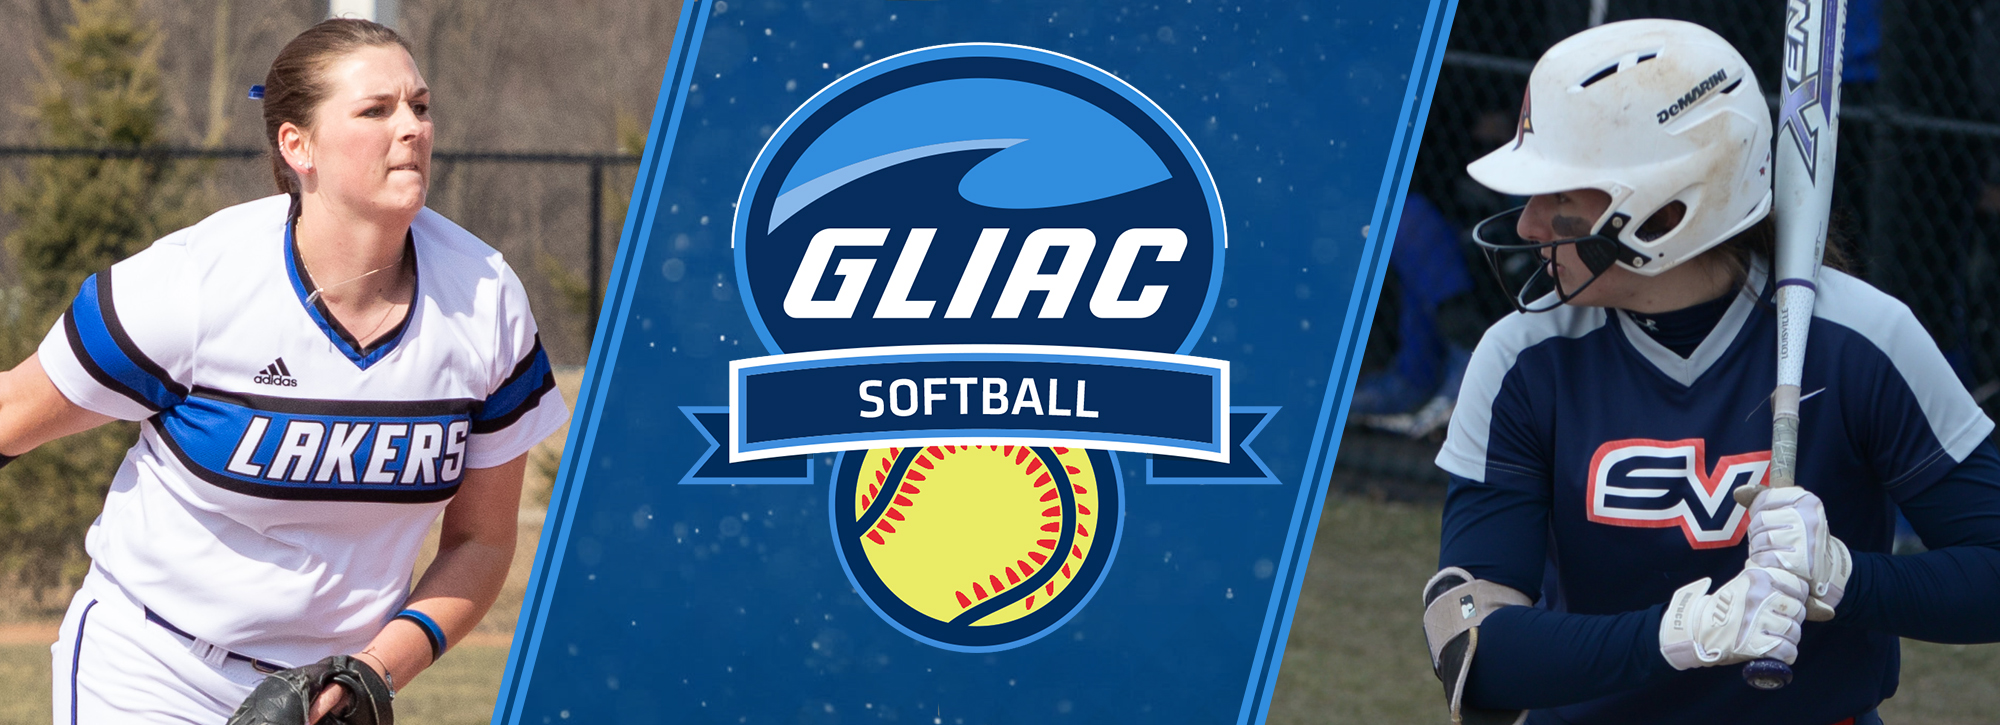 SVSU's Popko and GVSU's Lipovsky garner softball player of the week awards